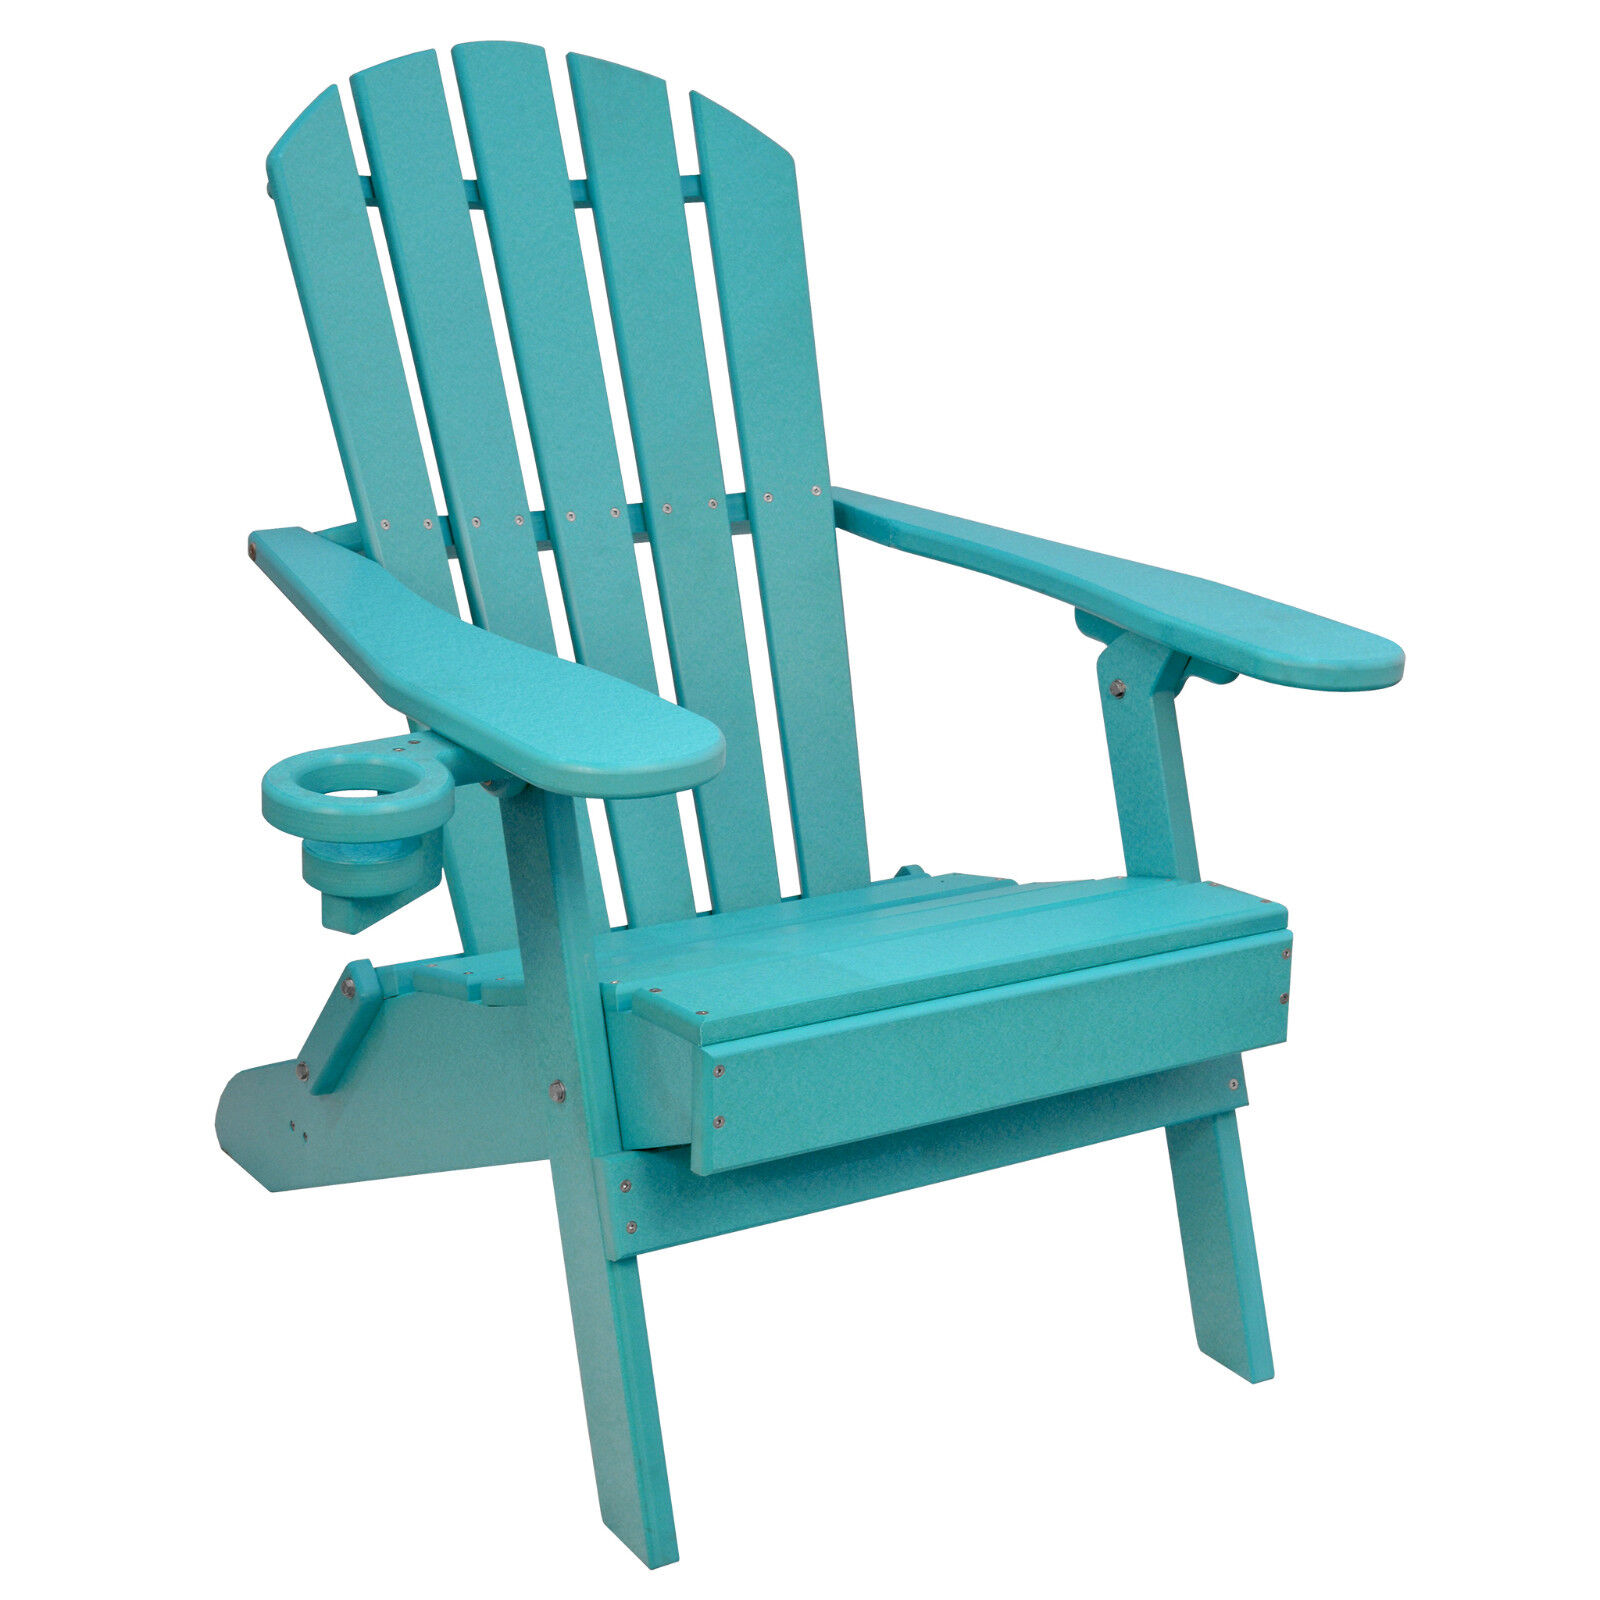 Details About Outer Banks Value Line Poly Lumber Folding Adirondack Chair W Cupholder